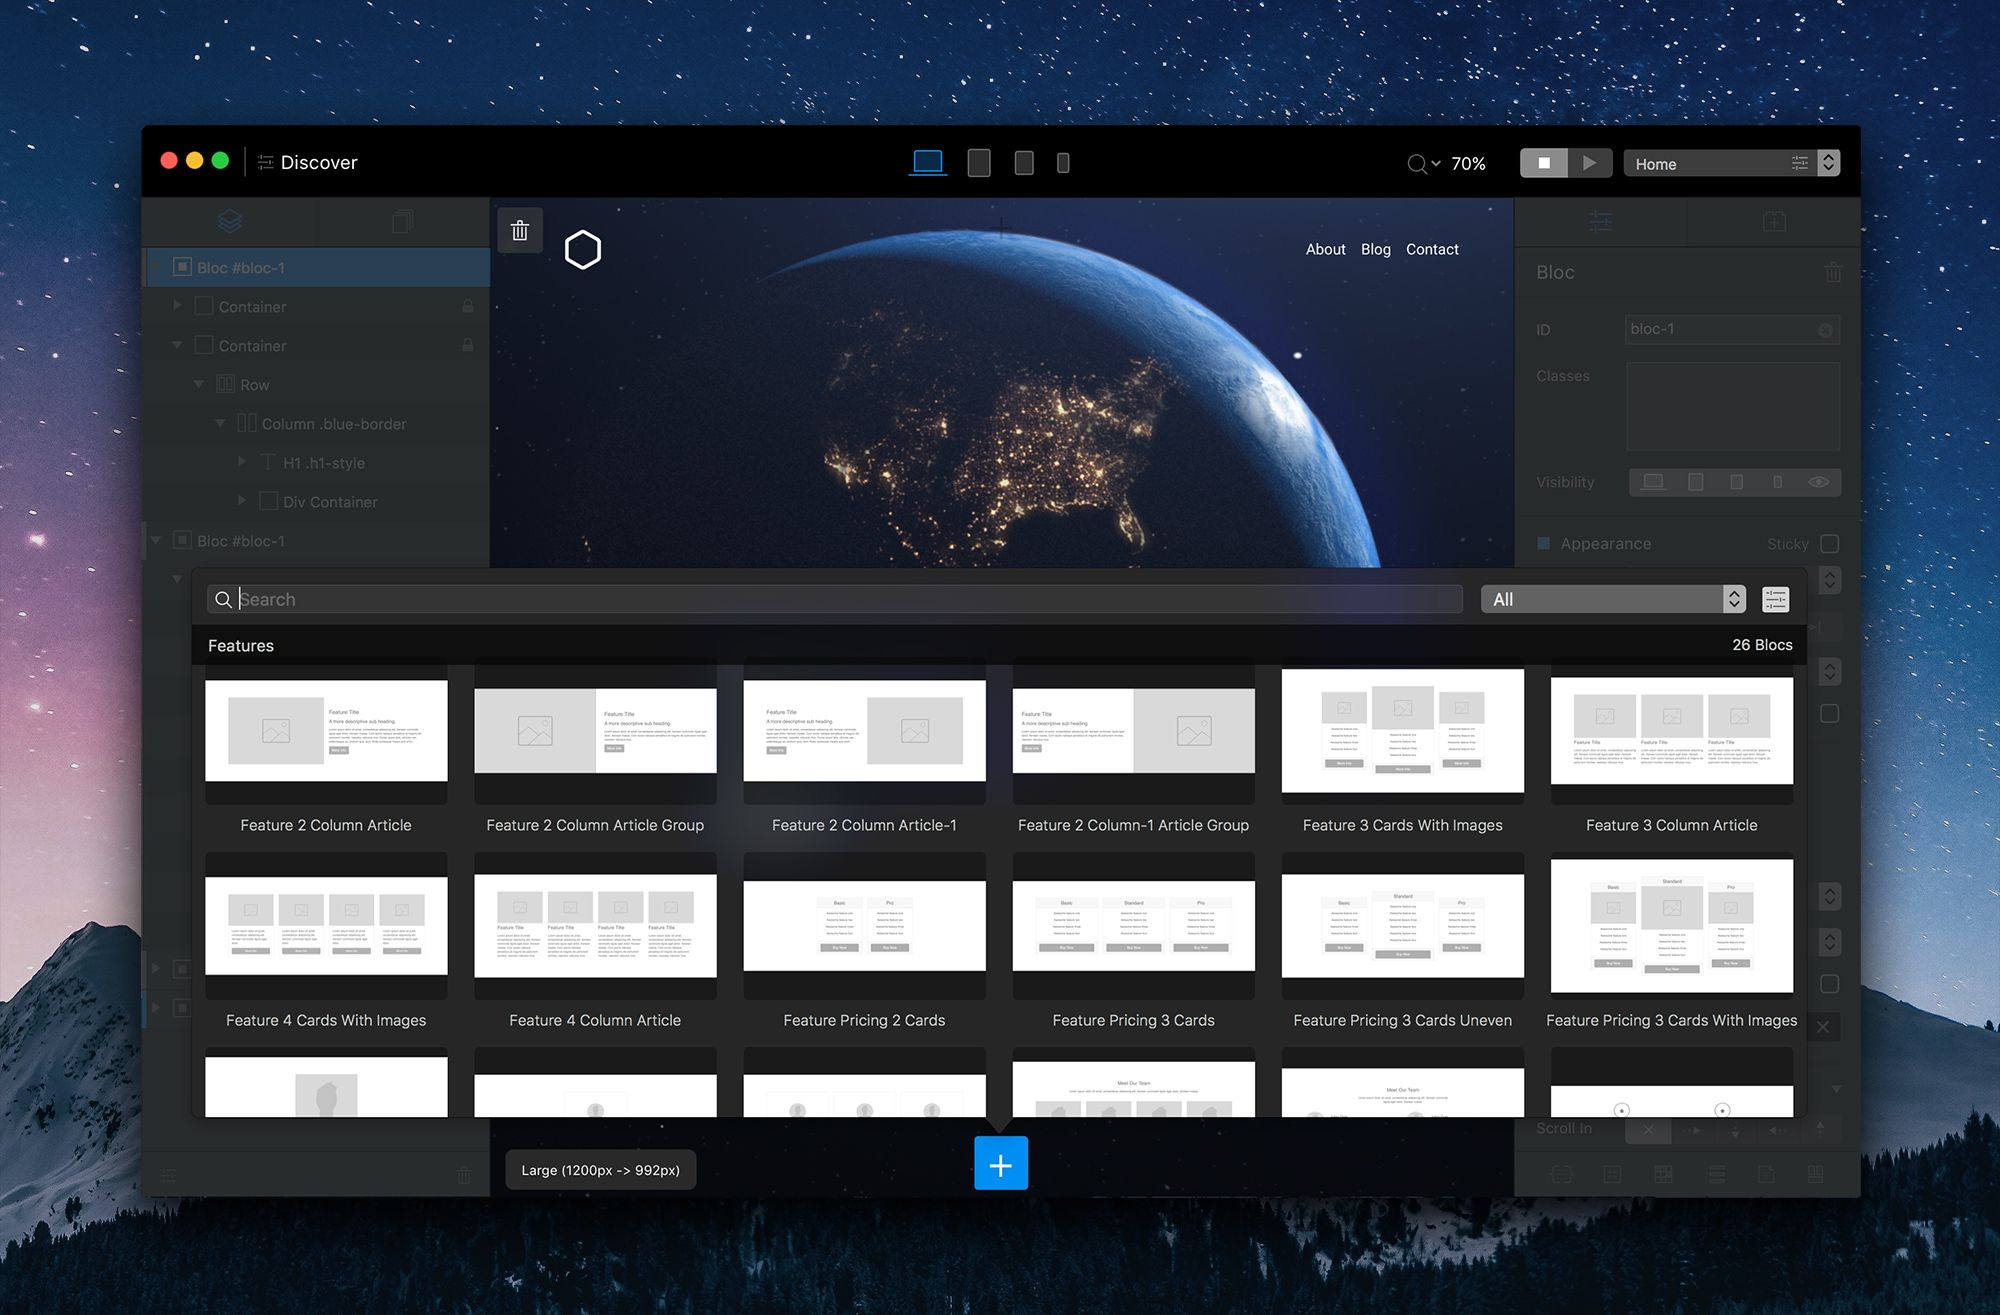 The Bloc Bar Is A Popover Menu That Lets You Quickly And Intuitively Add Additional Pre Made Sections Blocks Web Design Software Web Design Web Design Tools